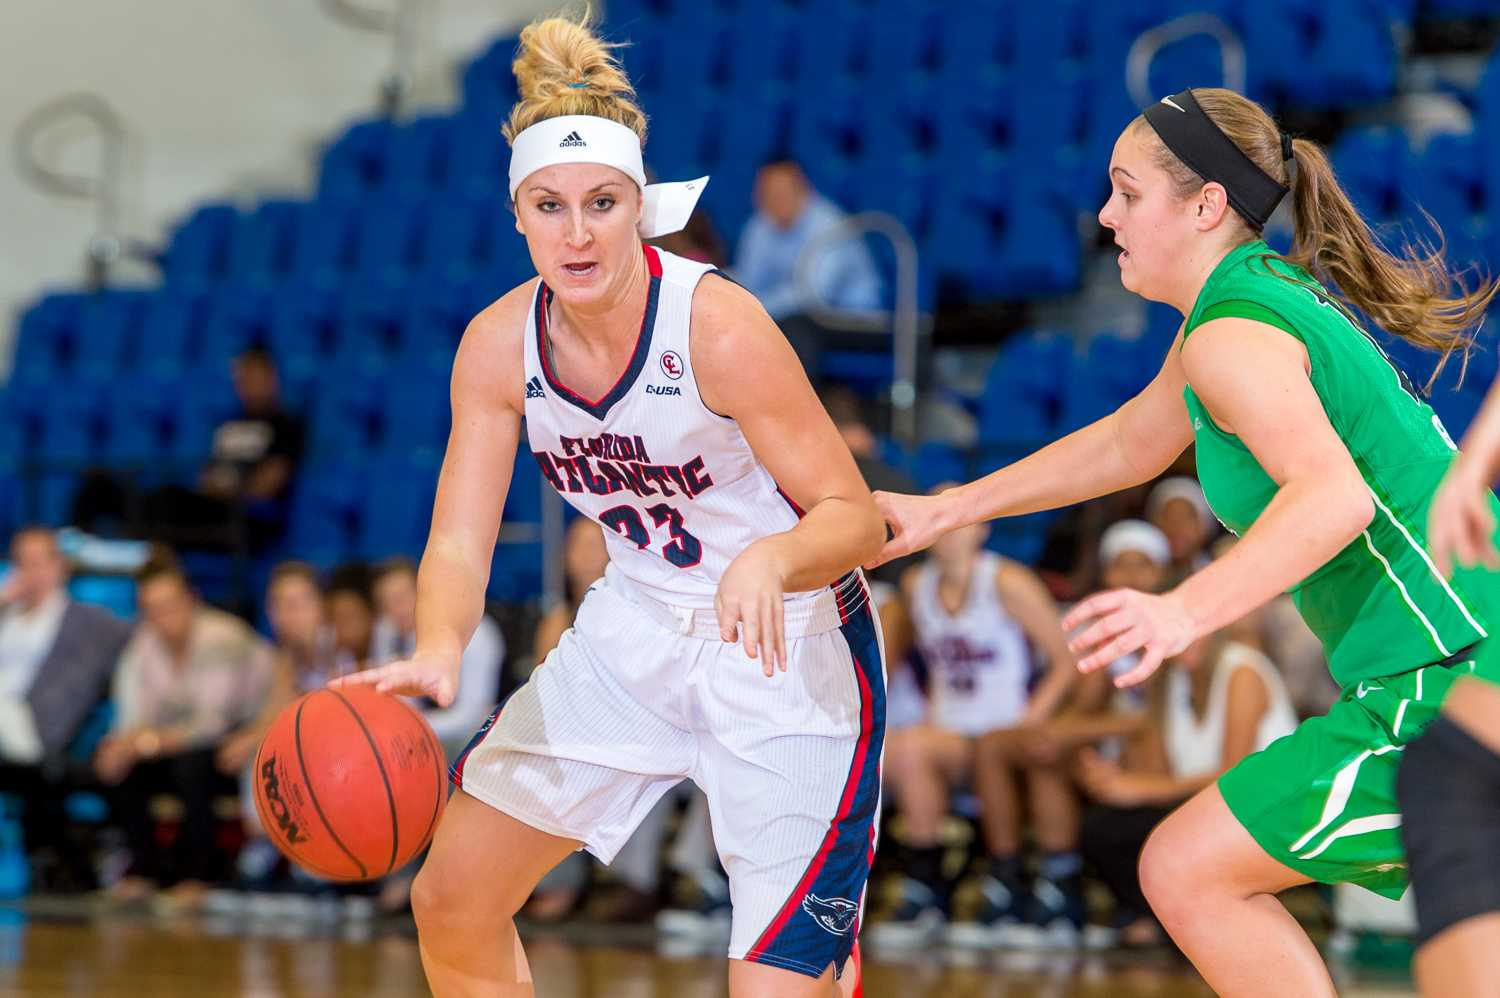 Redshirt senior Ali Gorrell dribbles towards the basket during the Owls' 84-73 victory over Marshall. Max Jackson | Staff Photographer